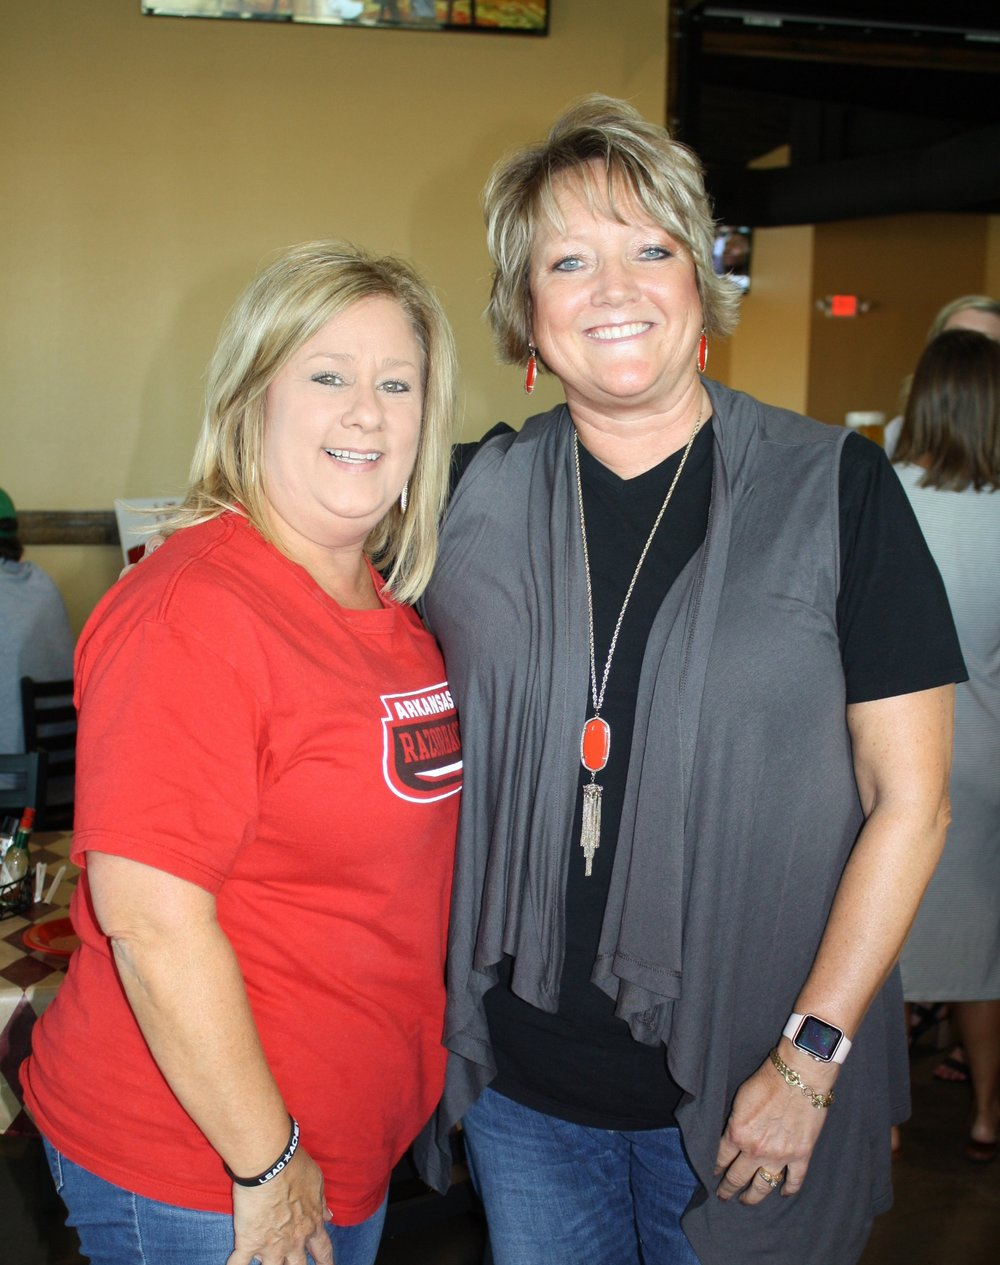 Patty McDonald and Cindy Snell